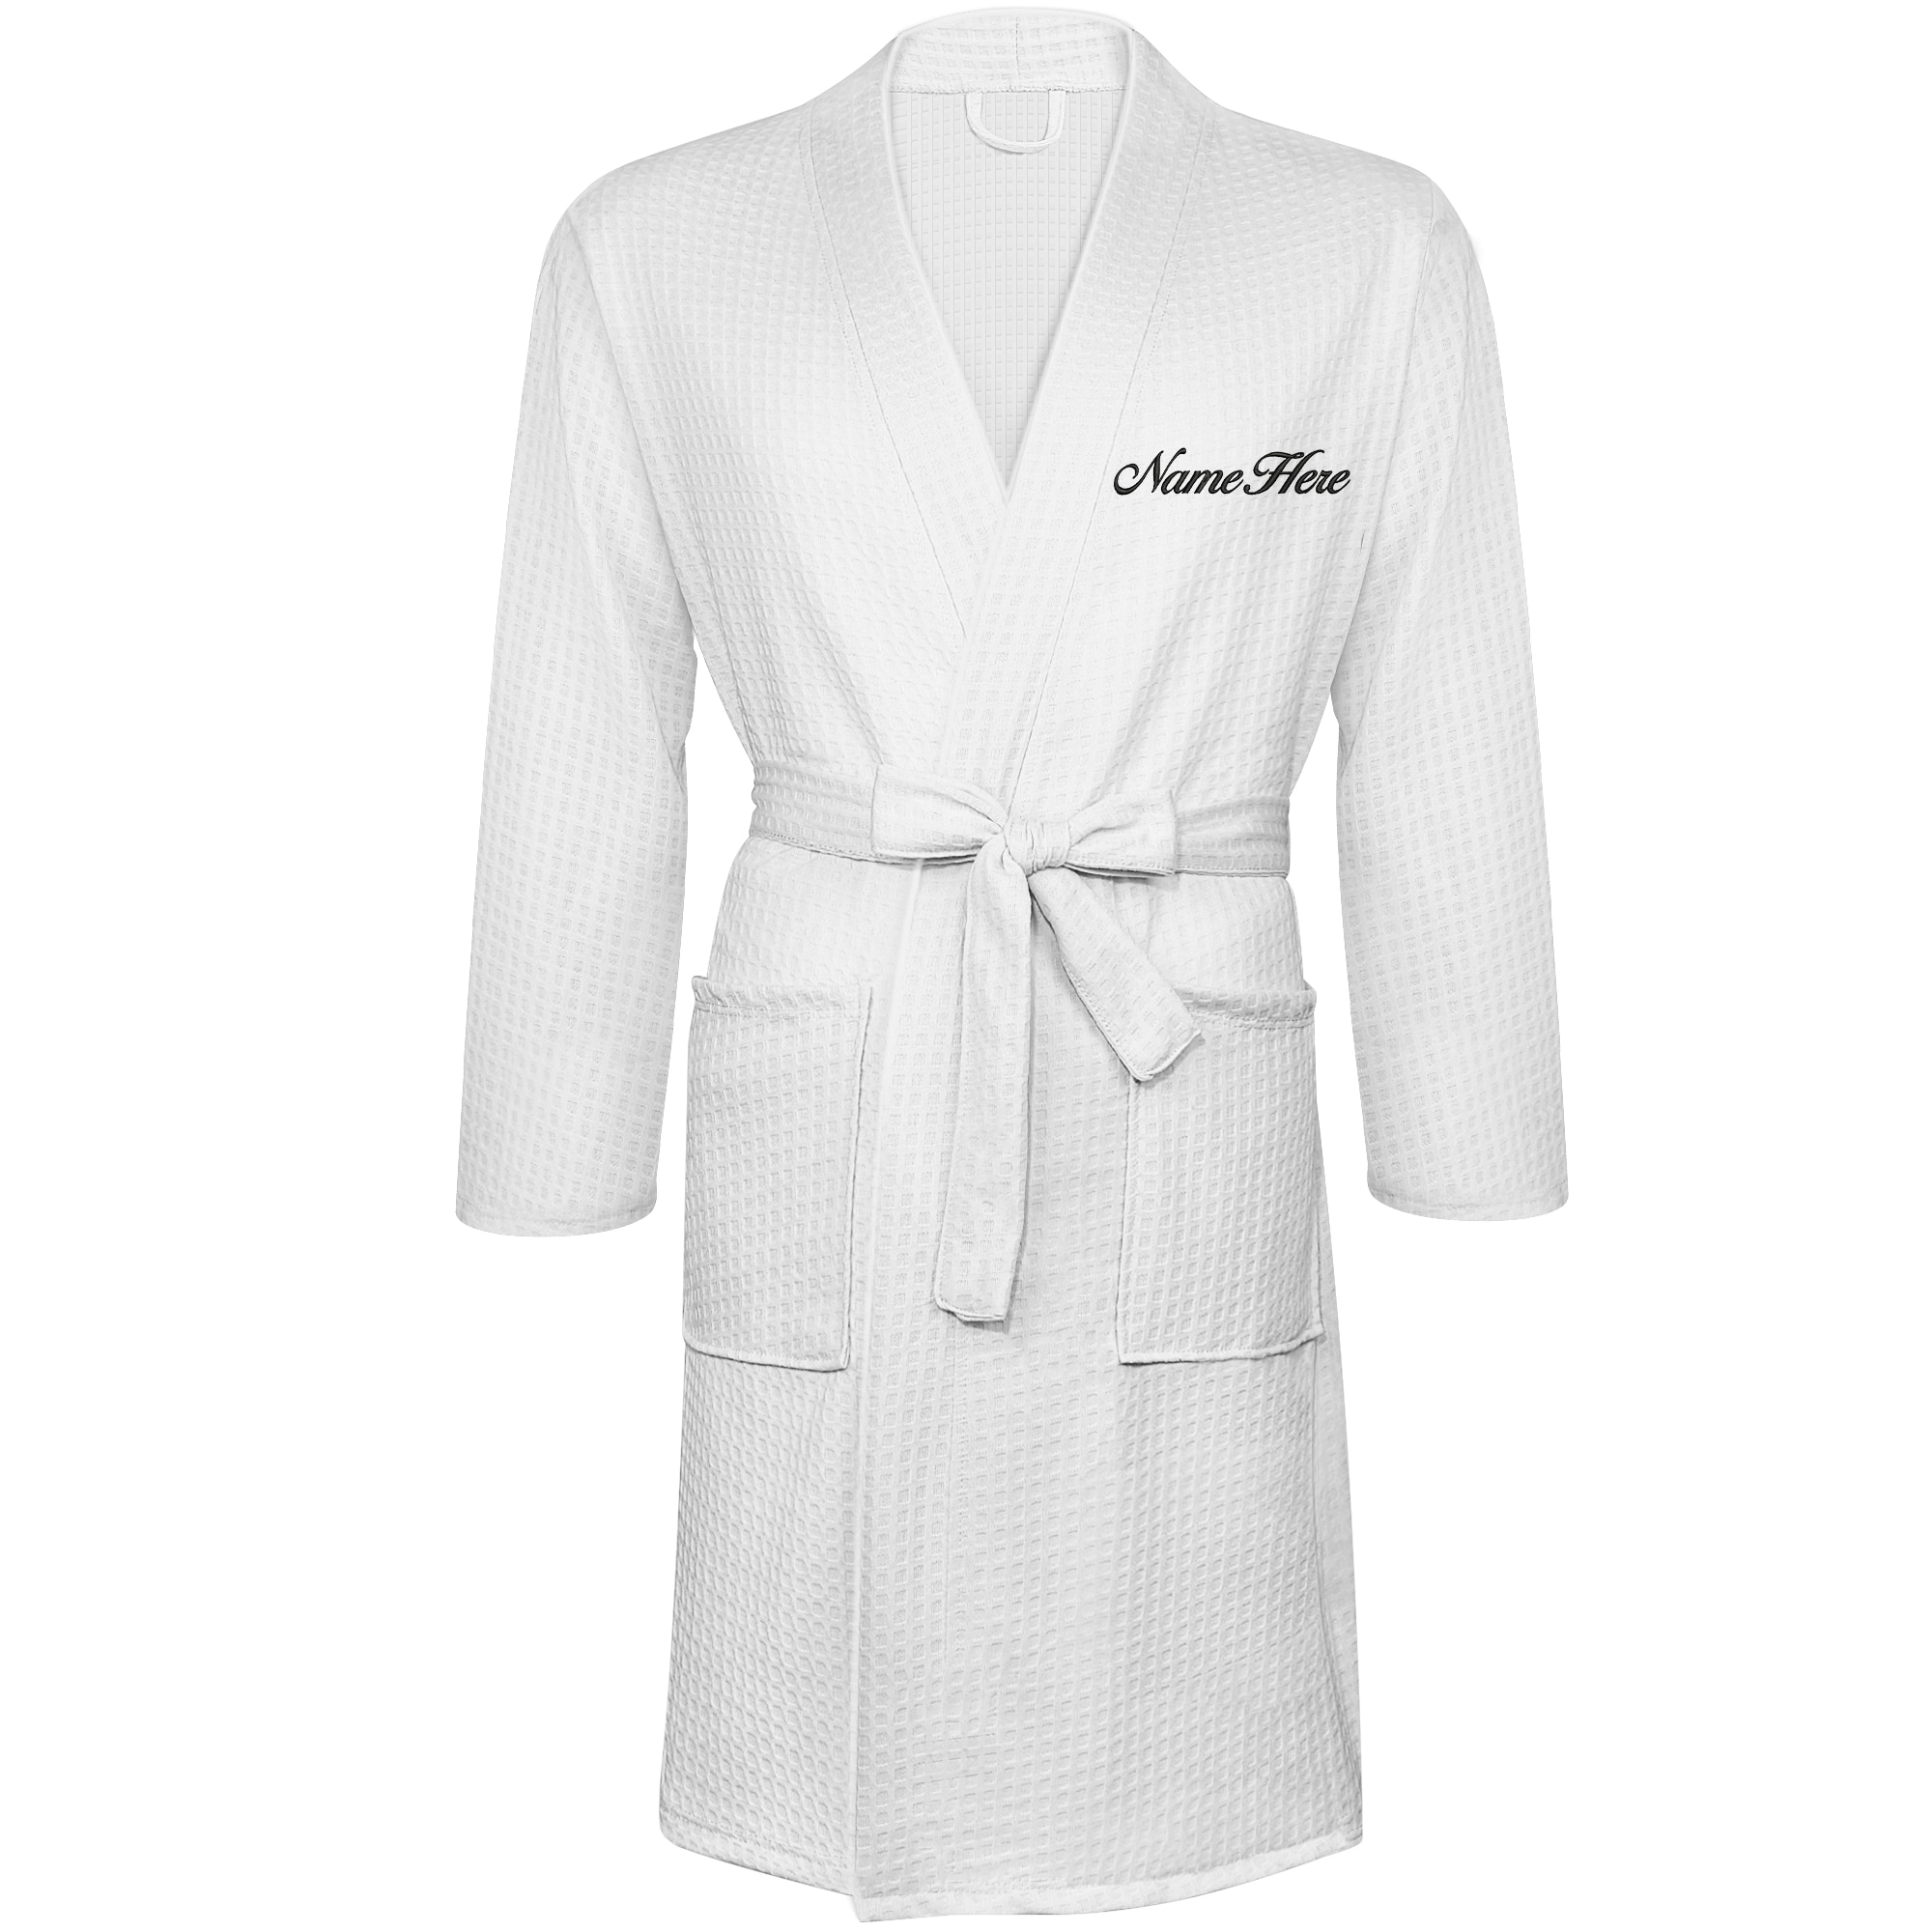 Custom Robes Monogrammed Bathrobes 1Pcs Personalized Embroidered Waffle Robes with Names Free shipping